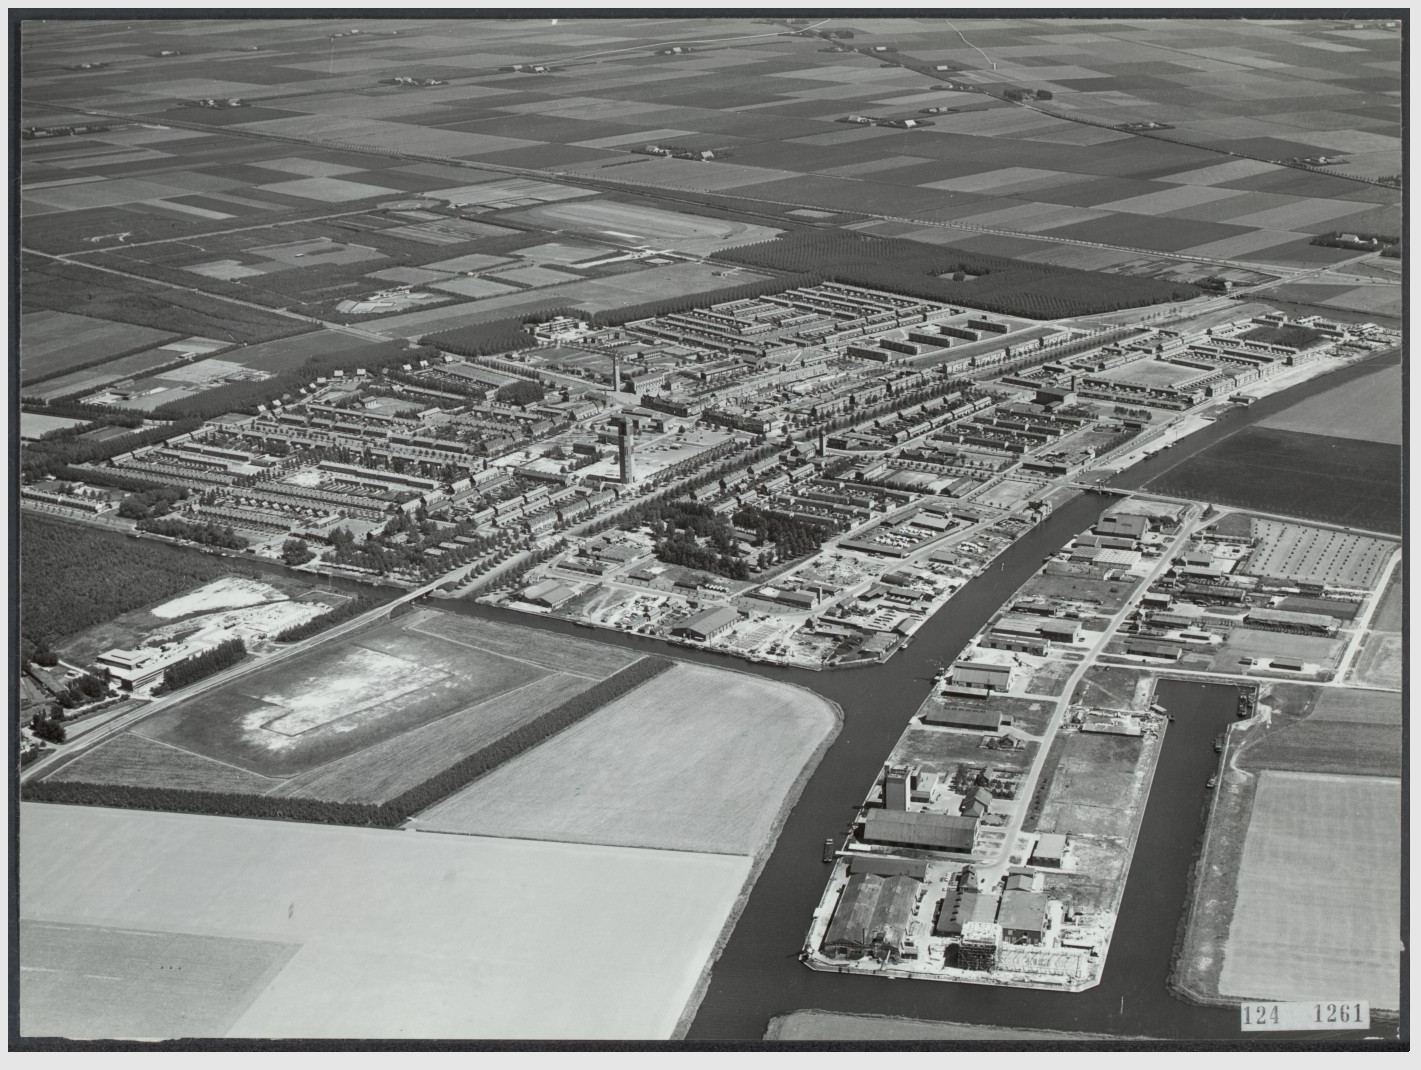 luchtfoto - Emmeloord-1959.png